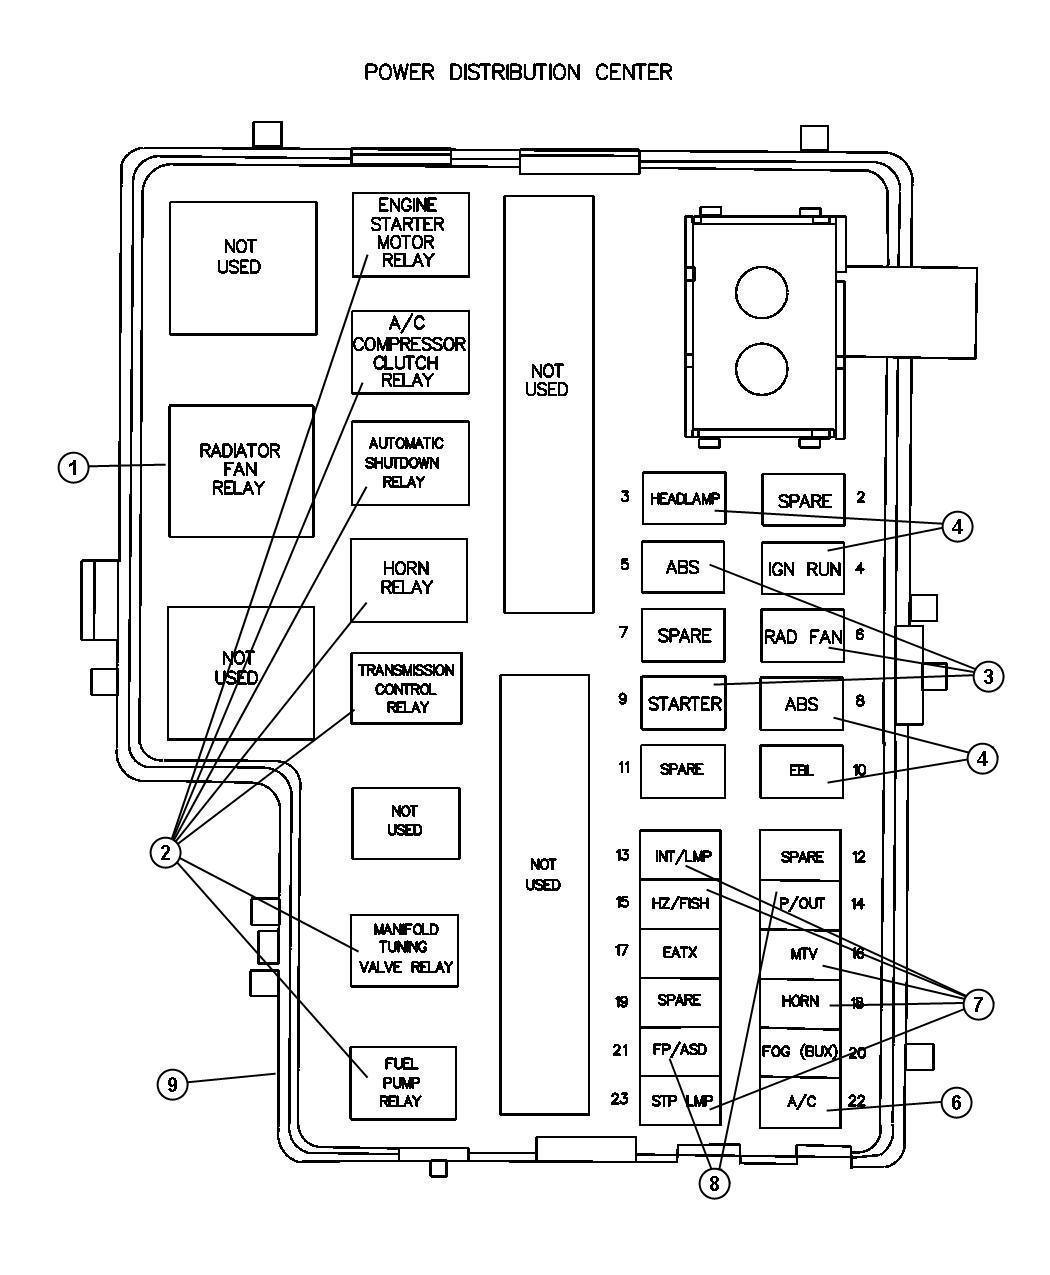 Diagram For 2007 Dodge Sprinter Fuse Box 40 Wiring Images 2002 Honda Odyssey Owners Manual Picture 00i81518 Diagrams Mack Trucks The Readingrat Net